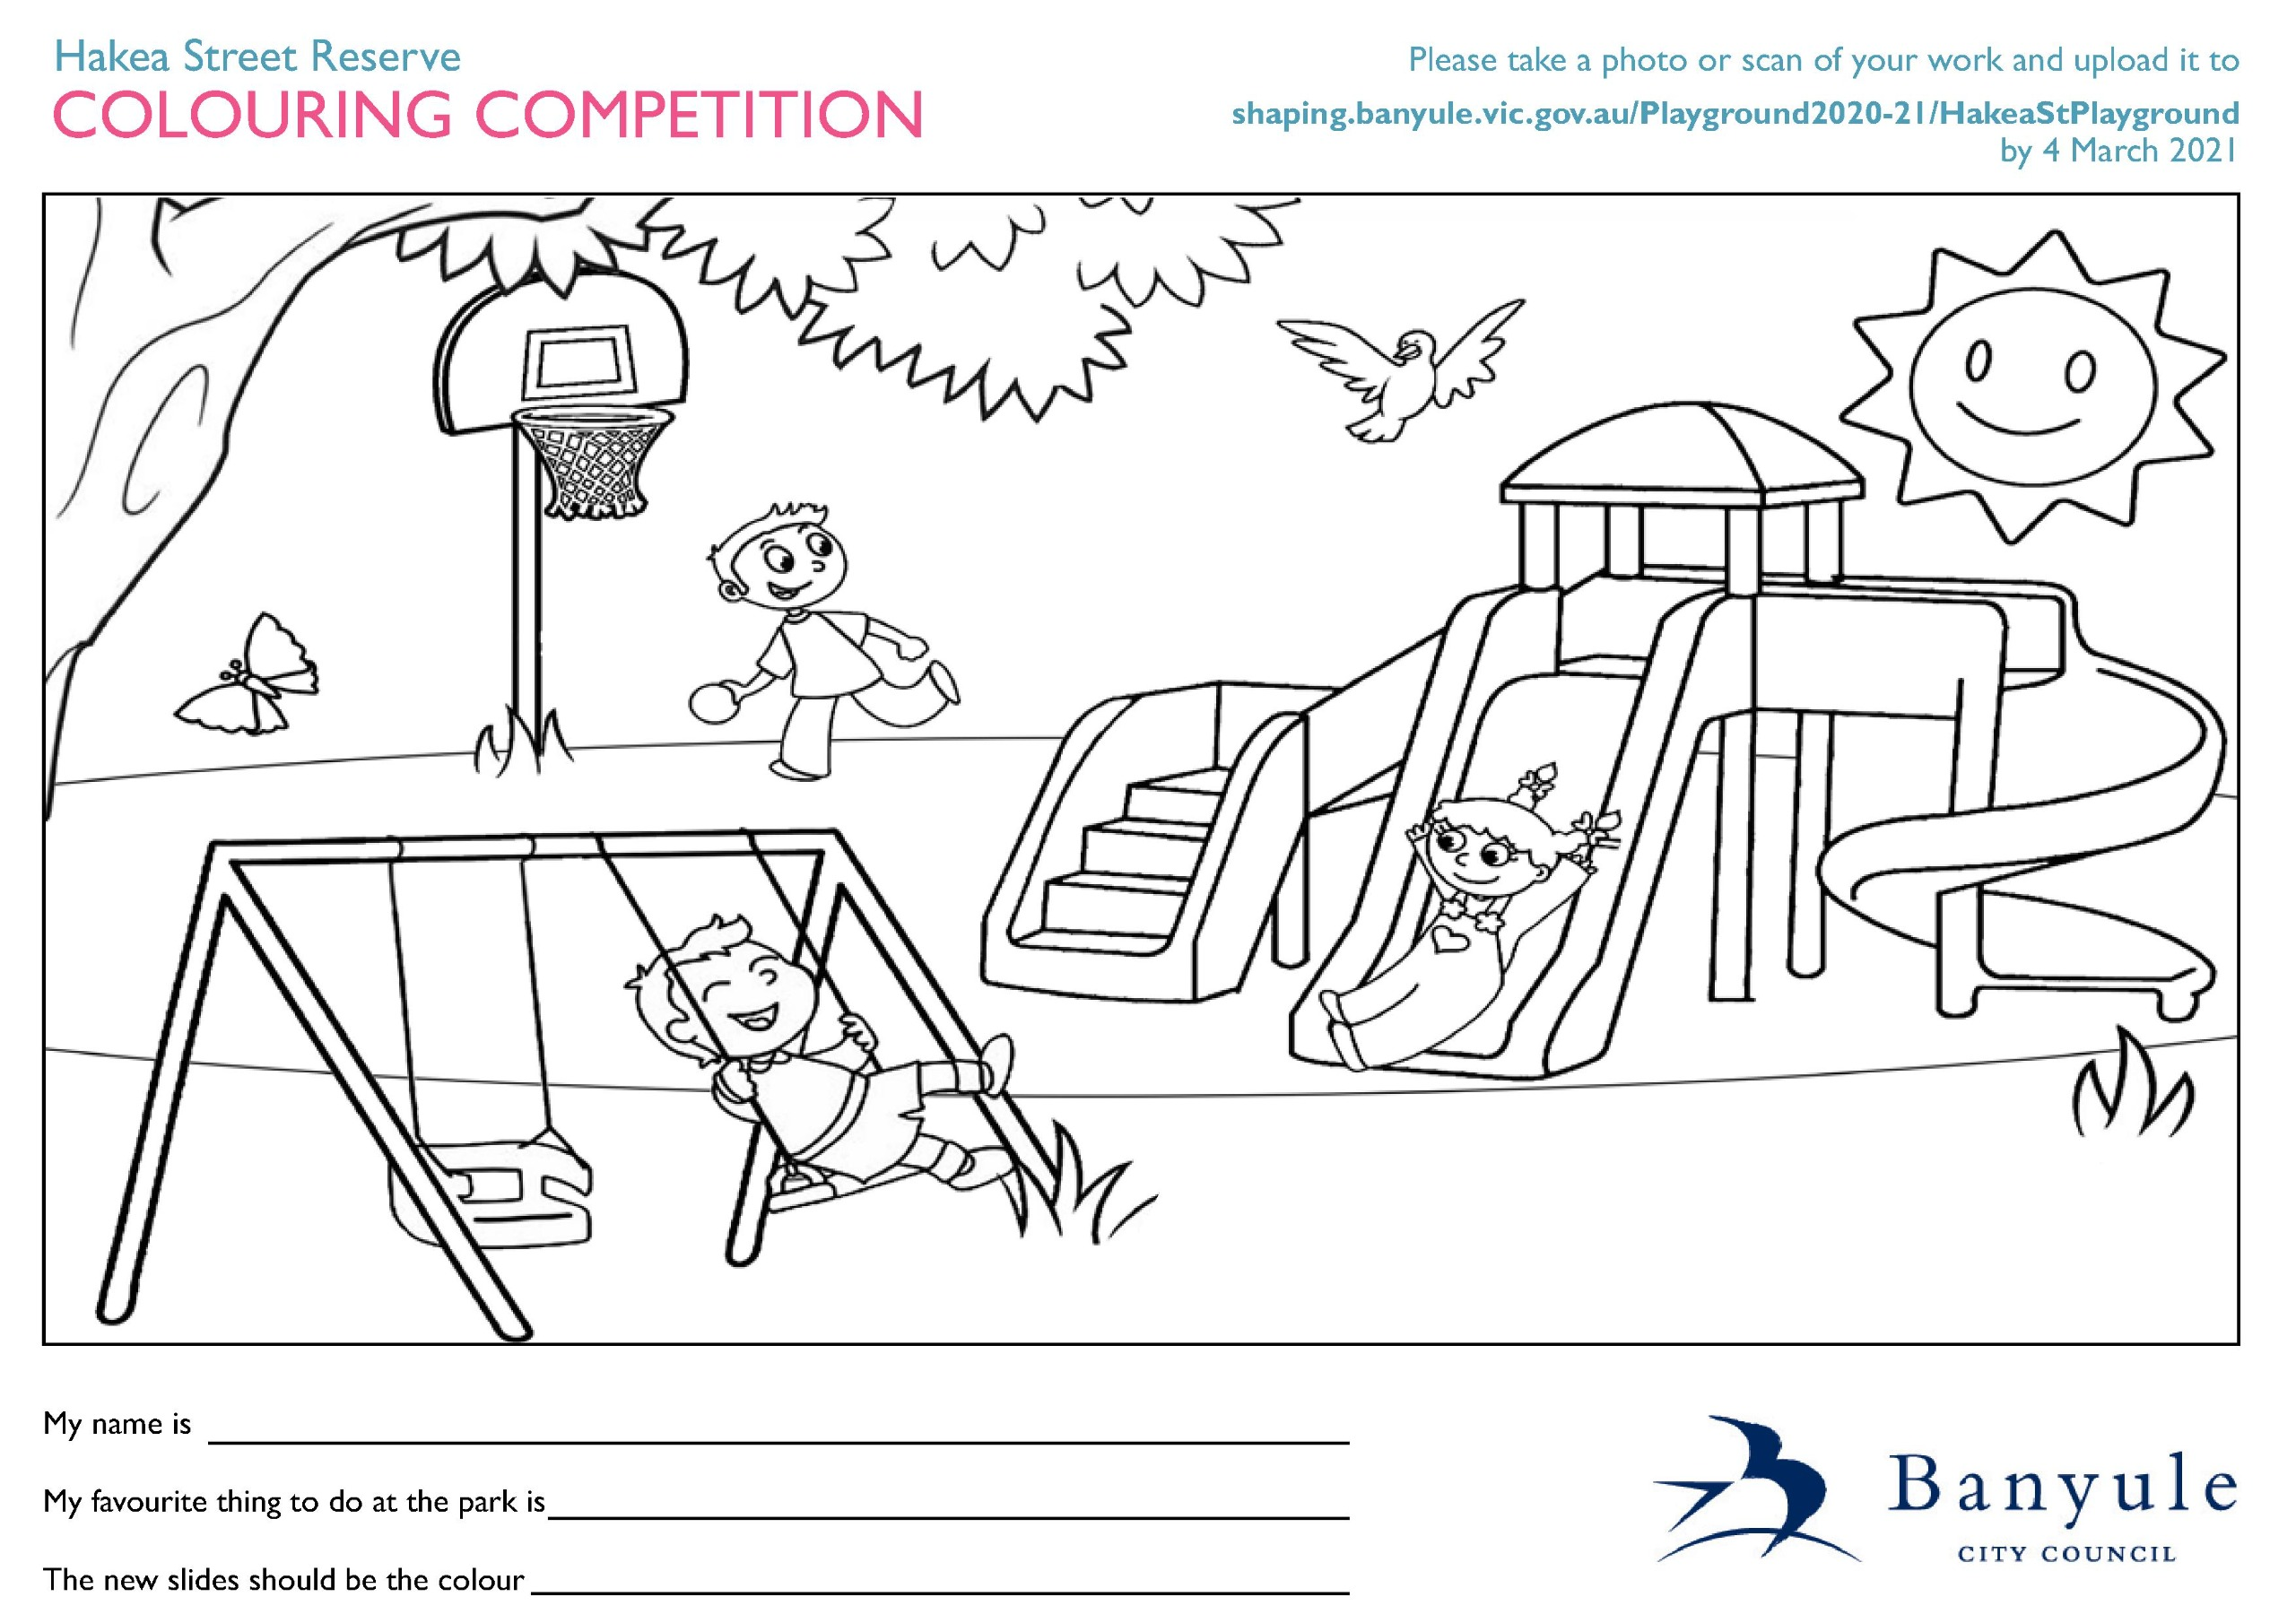 Hakea Street Reserve colouring competition entry form